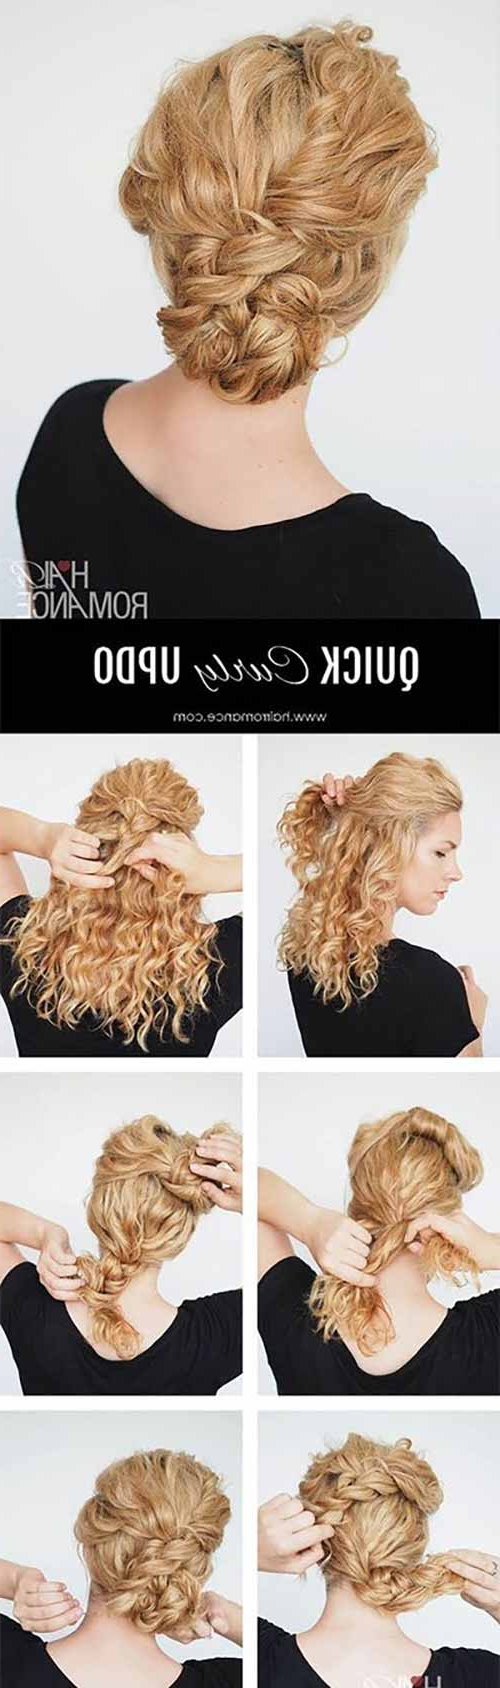 Well Known Messy Updo Hairstyles With Free Curly Ends Throughout 20 Incredibly Stunning Diy Updos For Curly Hair (View 19 of 20)